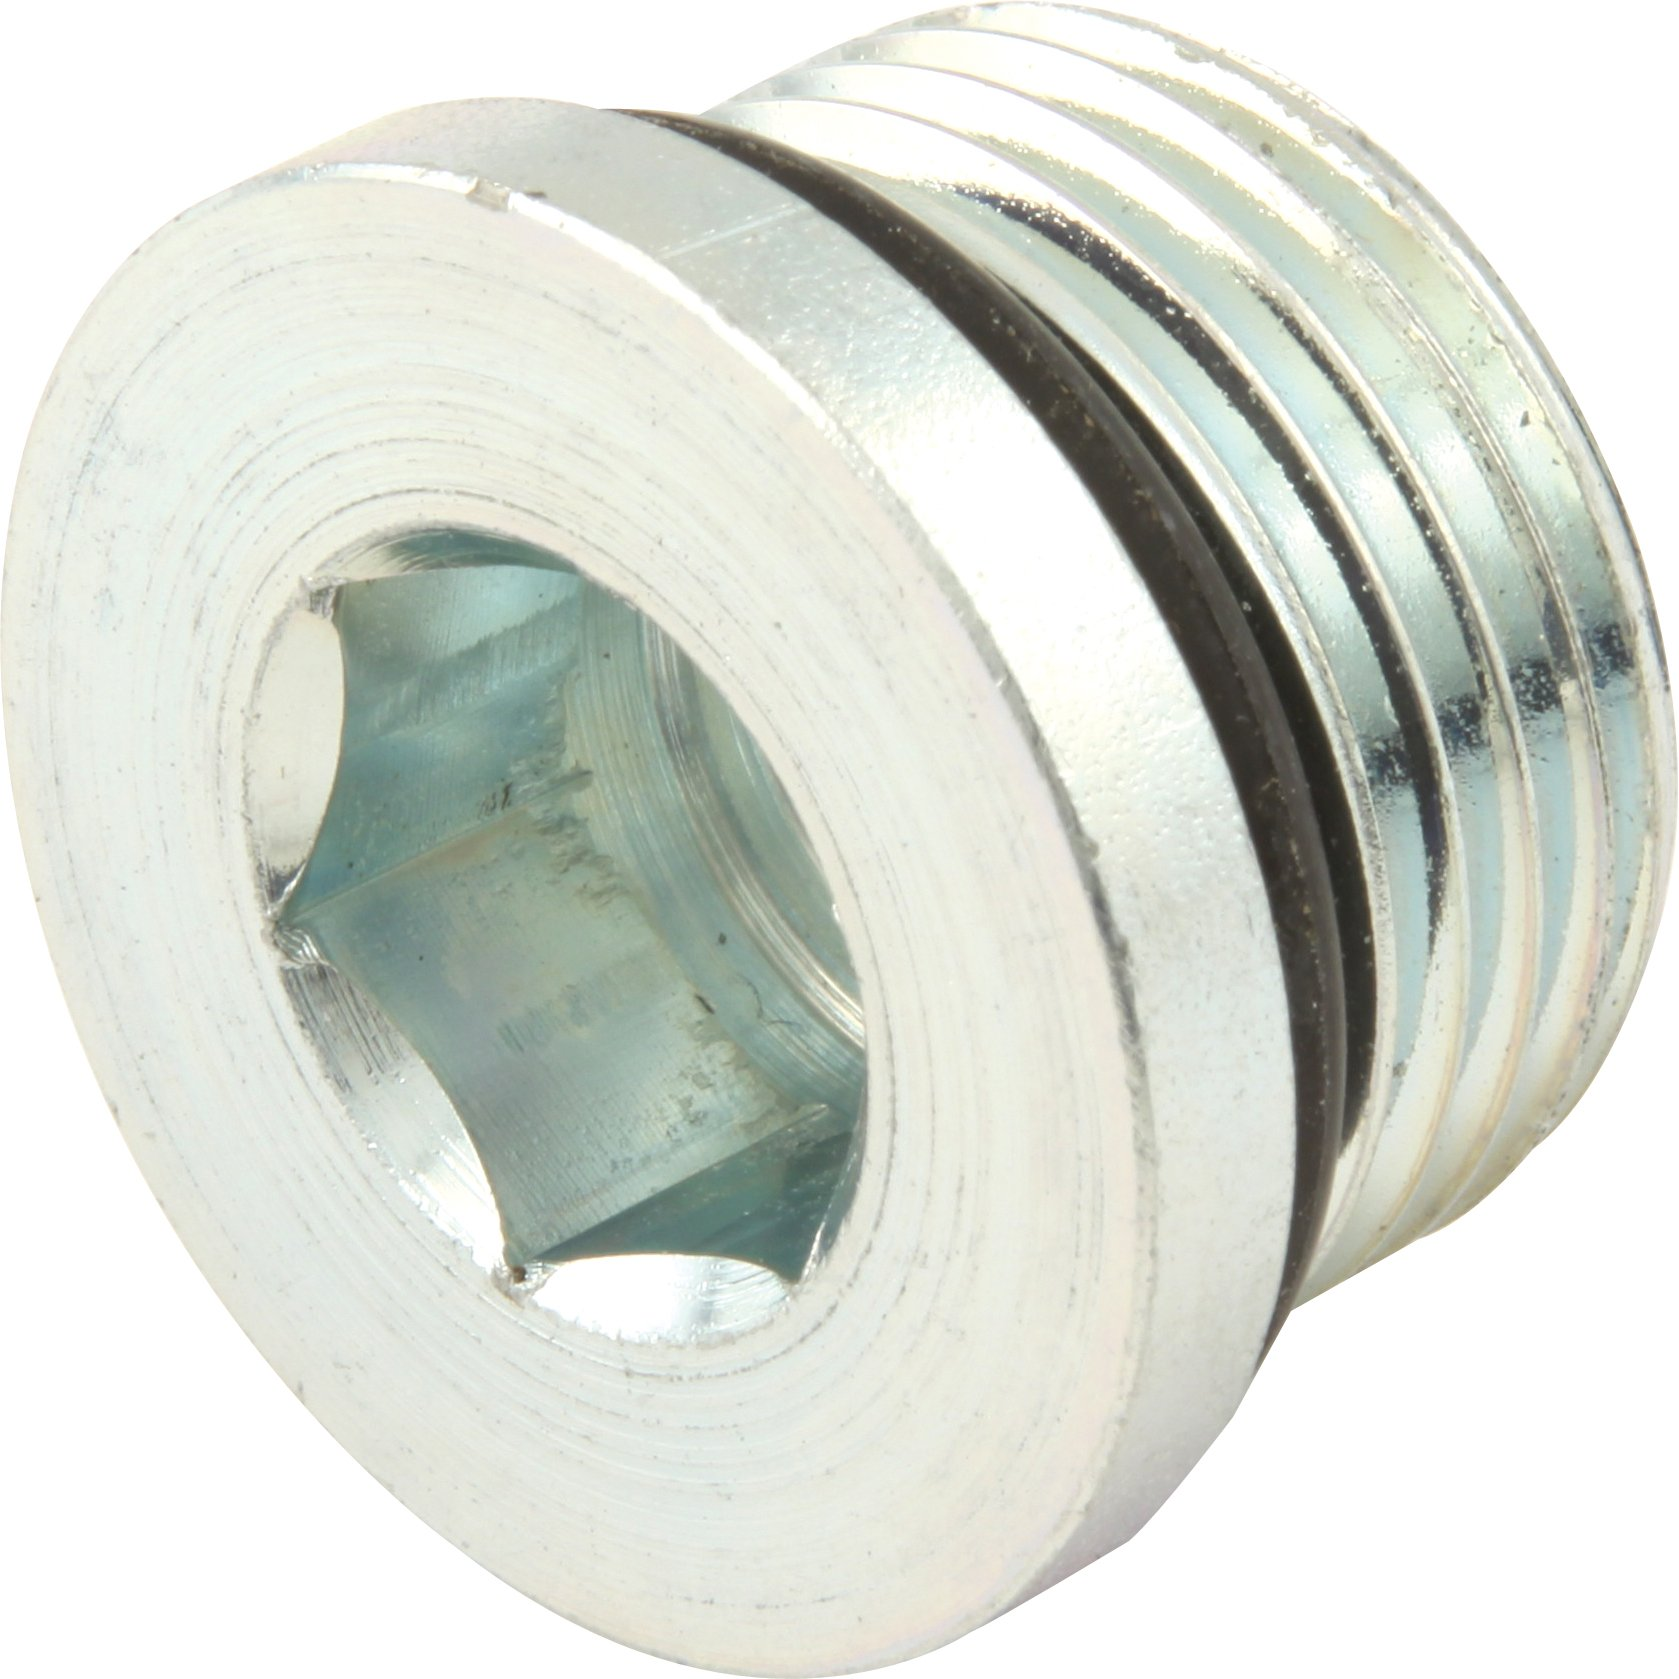 Peterson Fluid Systems 08-0505 12AN Plug Dry Sump Fitting